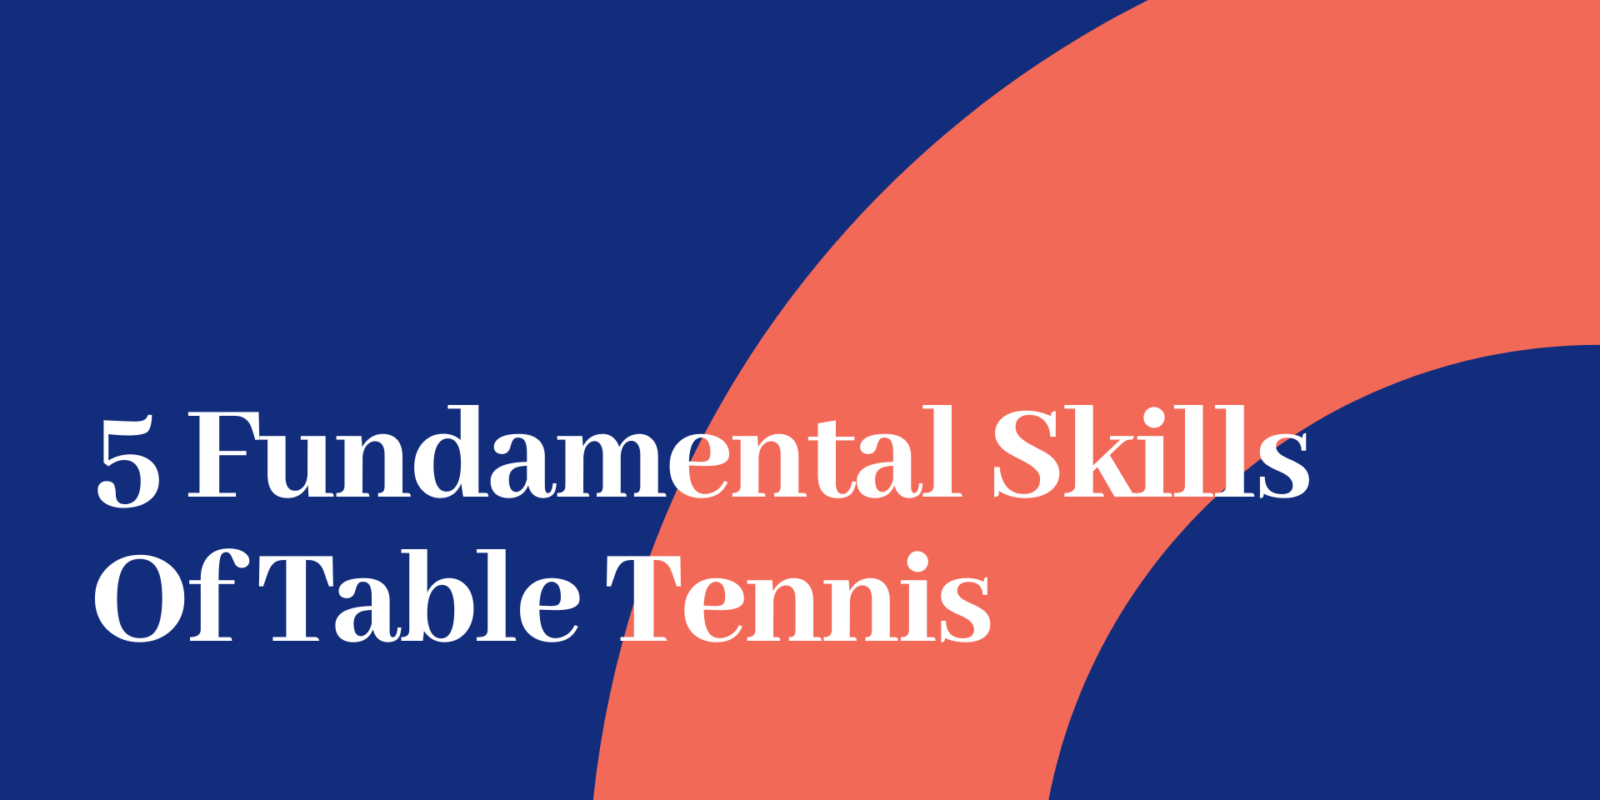 5 Fundamental Skills Of Table Tennis